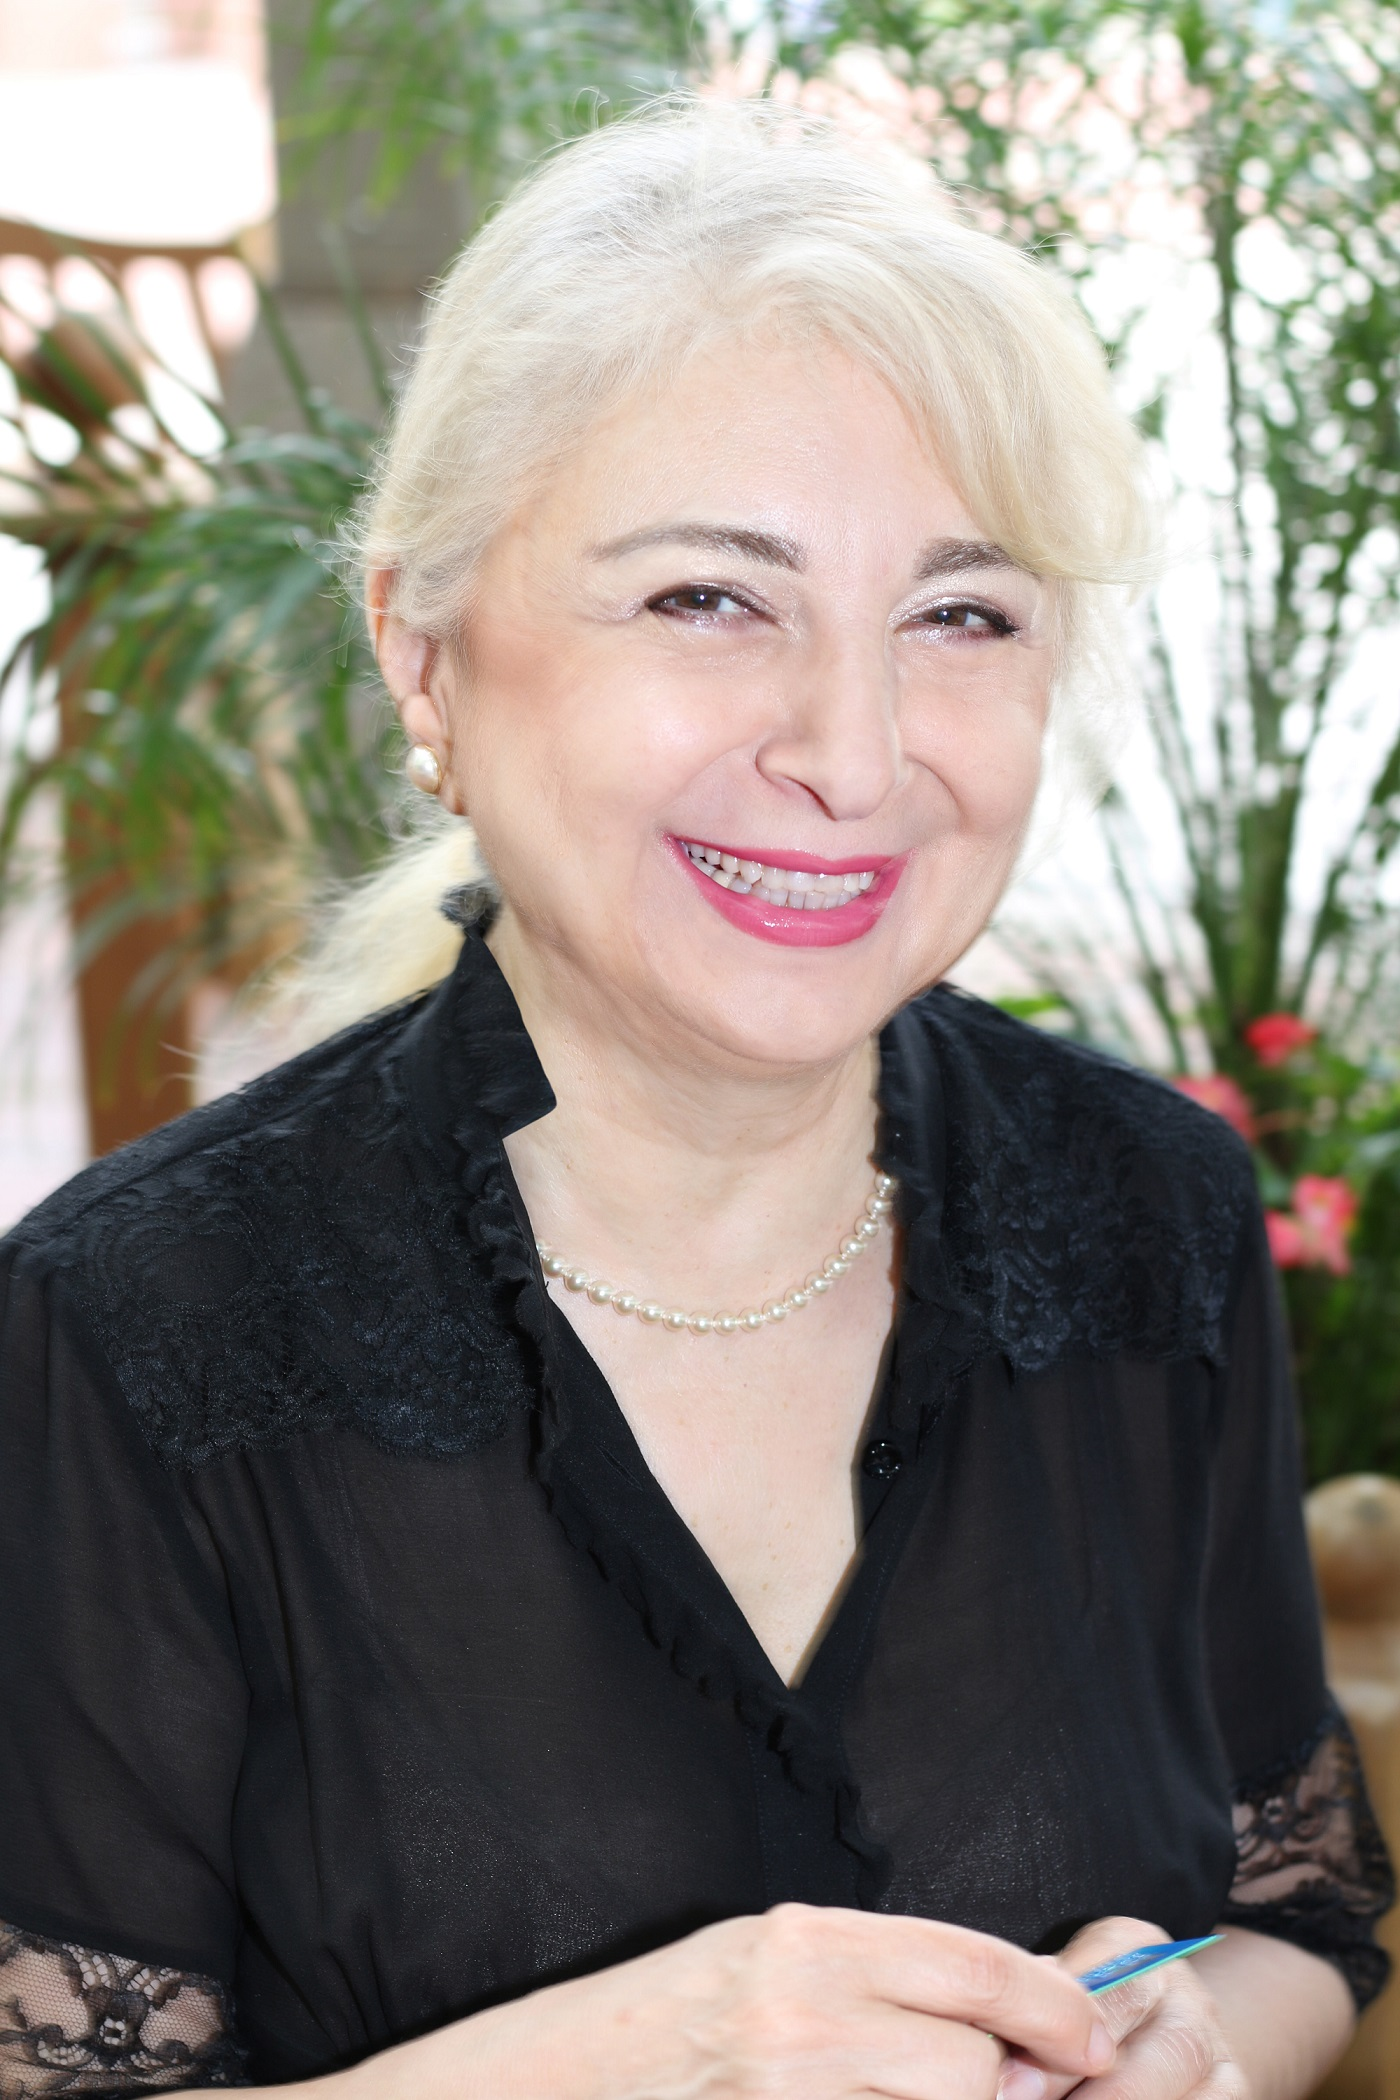 Lily Moslehi